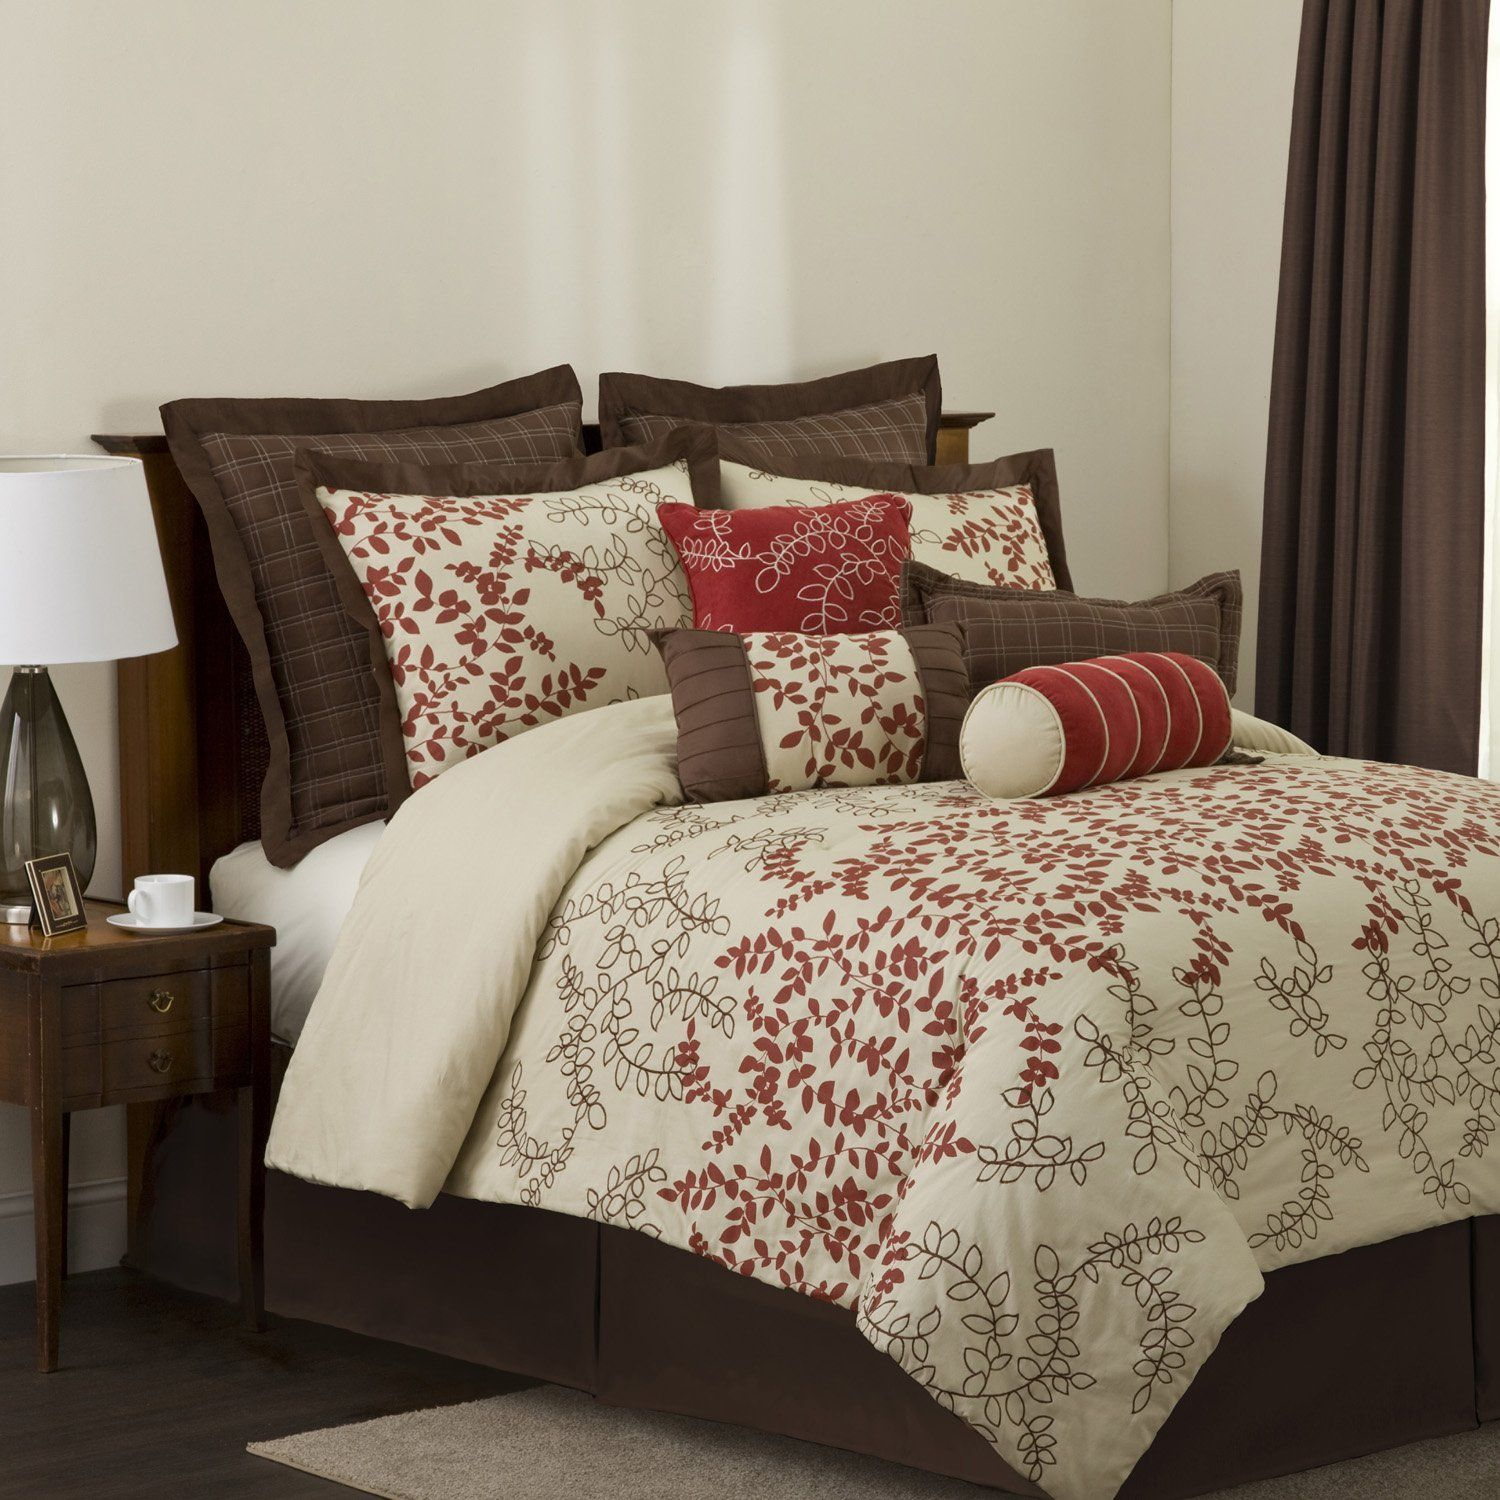 Lush Decor Hester 8-Piece Comforter Set, Full, Red/Wheat/Brown ...